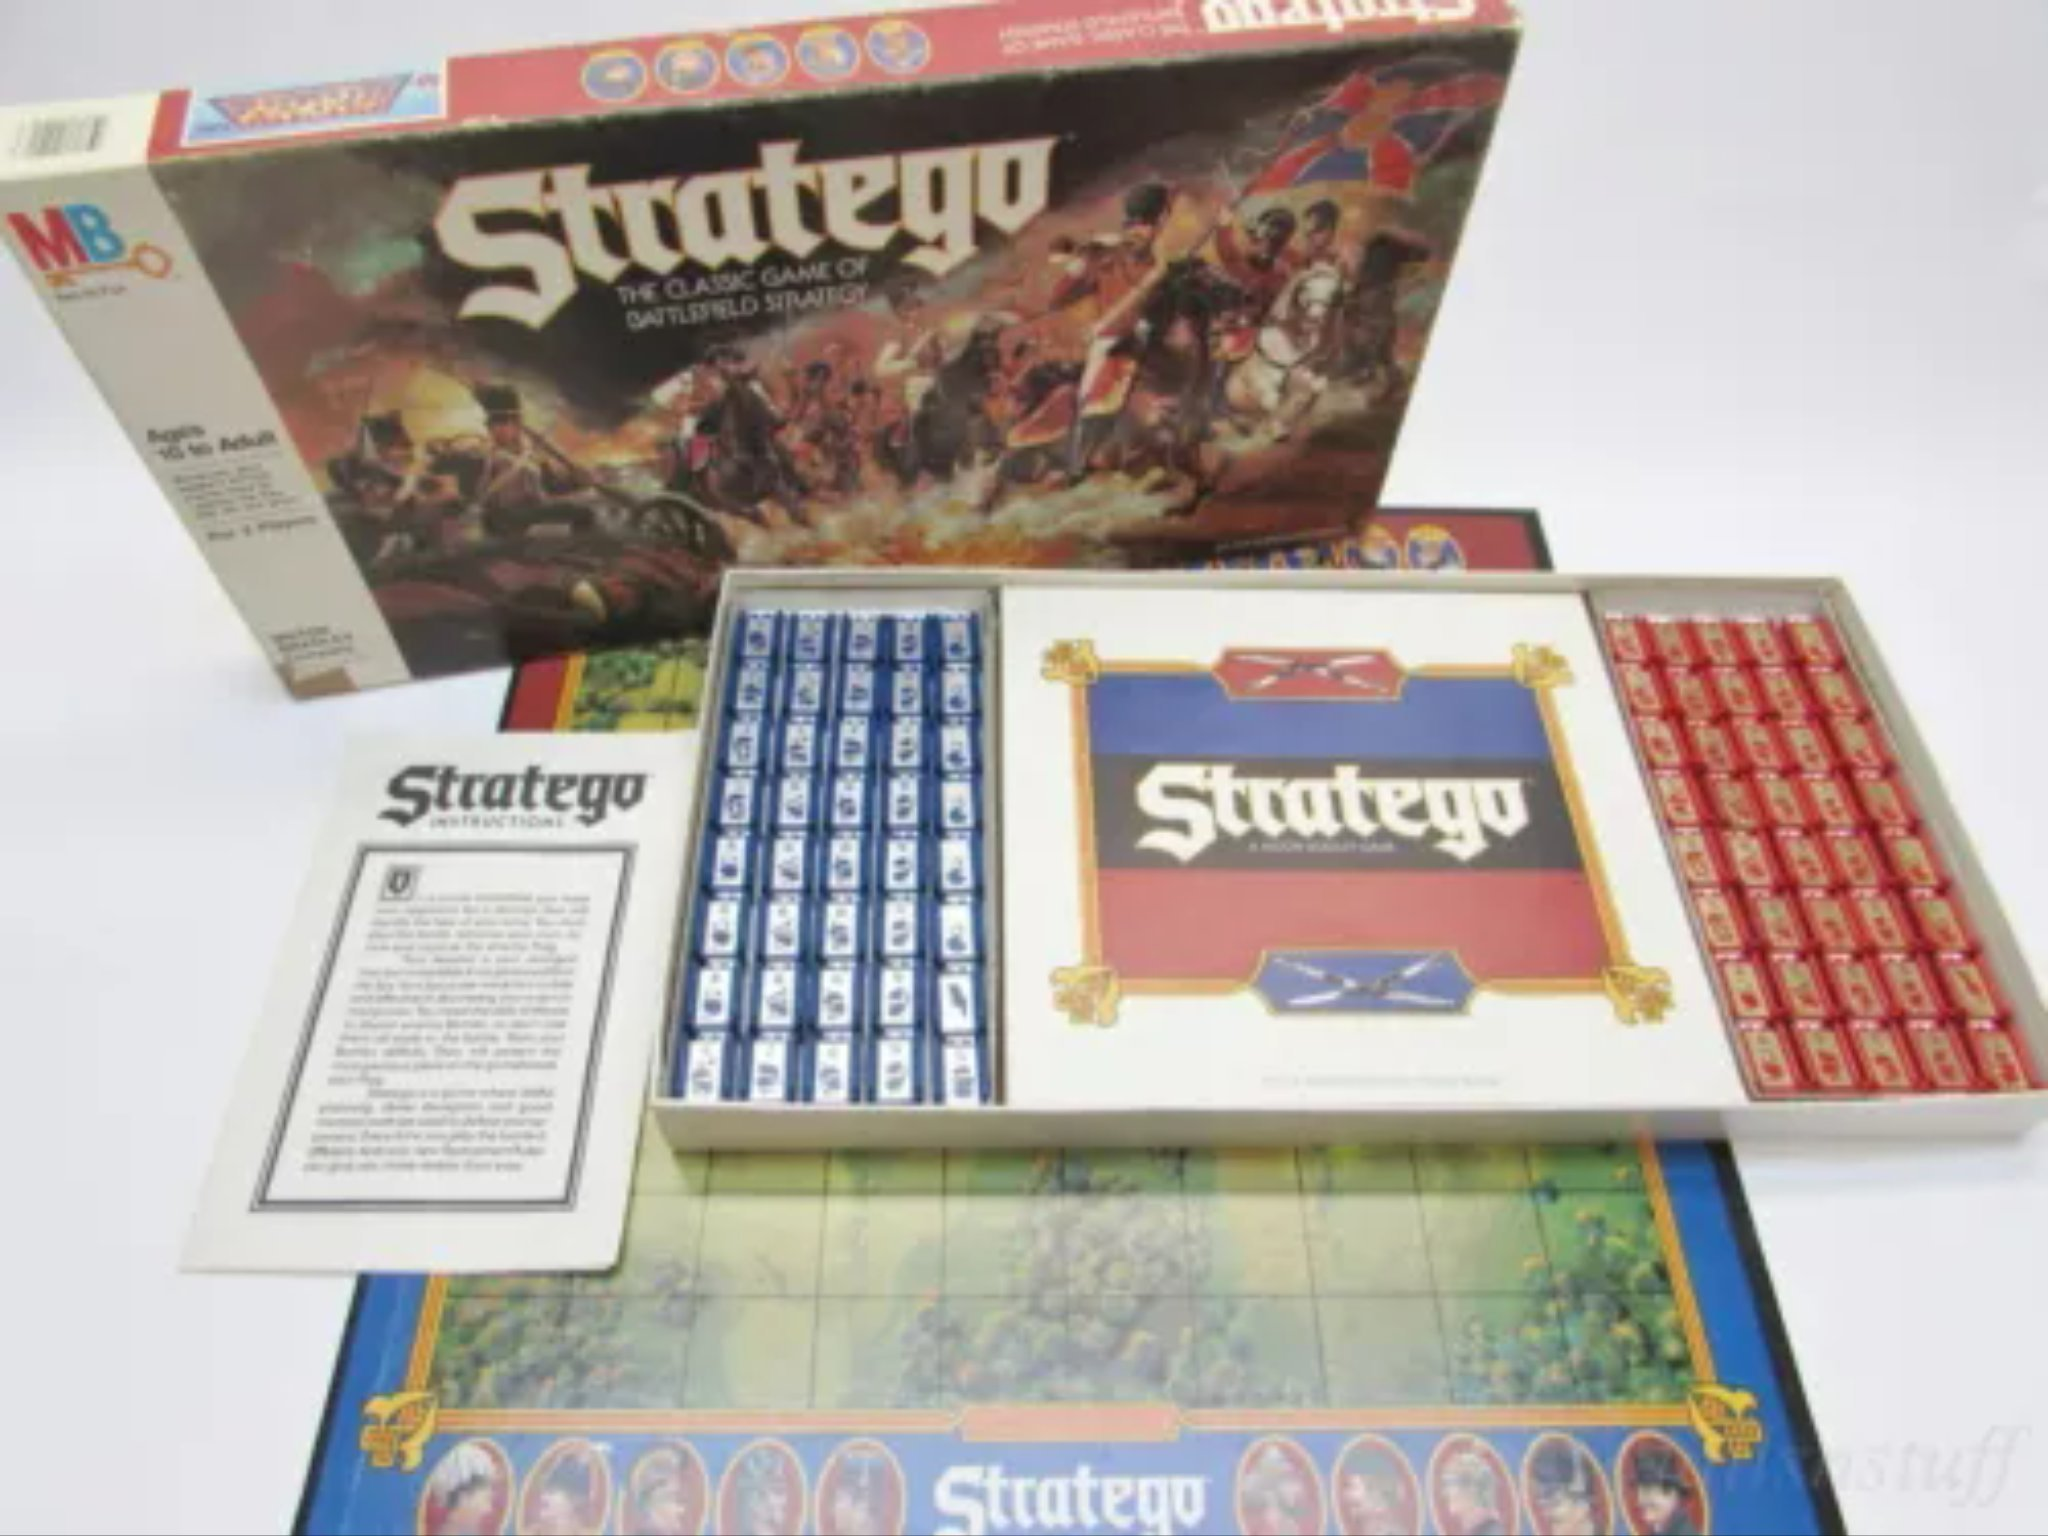 Stratego - The Classic Game of Battlefield Strategy 1986 Edition by Milton Bradley